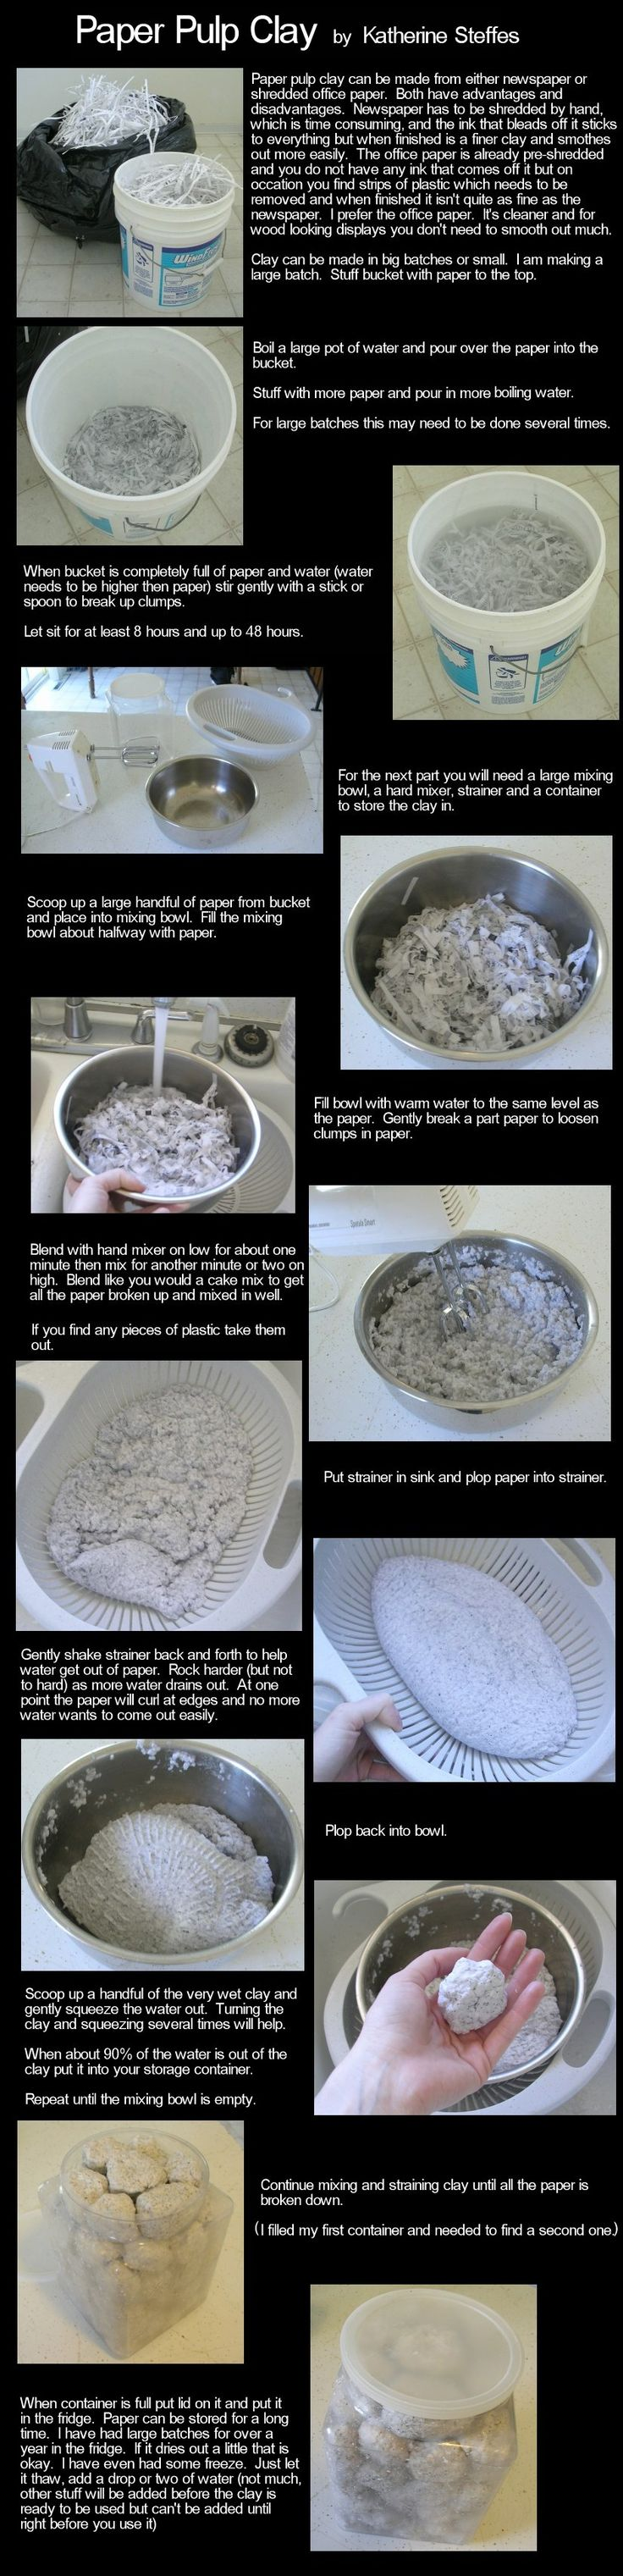 Paper Mache Recipe | proptology recipes ronnie burkett s papier mache recipes papier mache ...